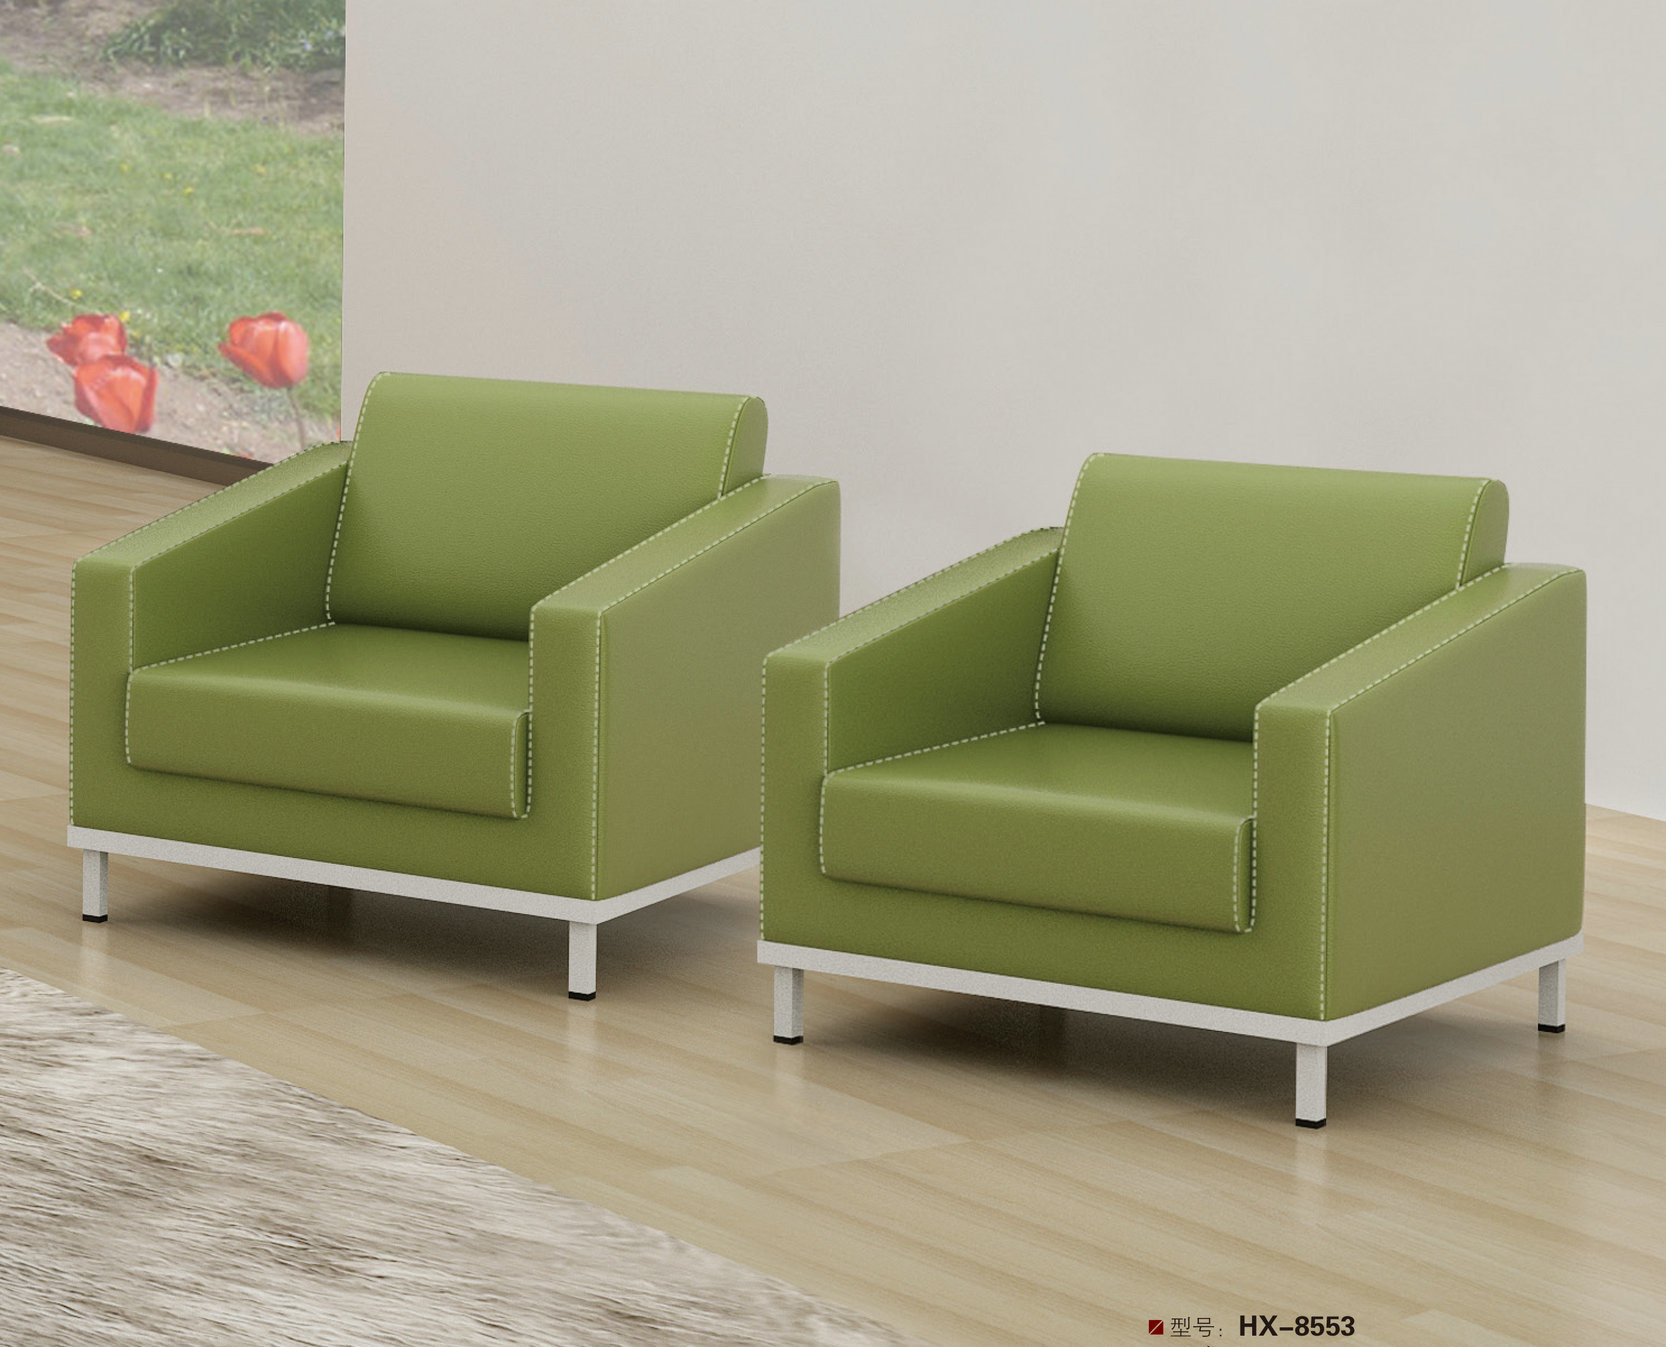 China Green Color Leather fice Sofa Chair 8553 China fice